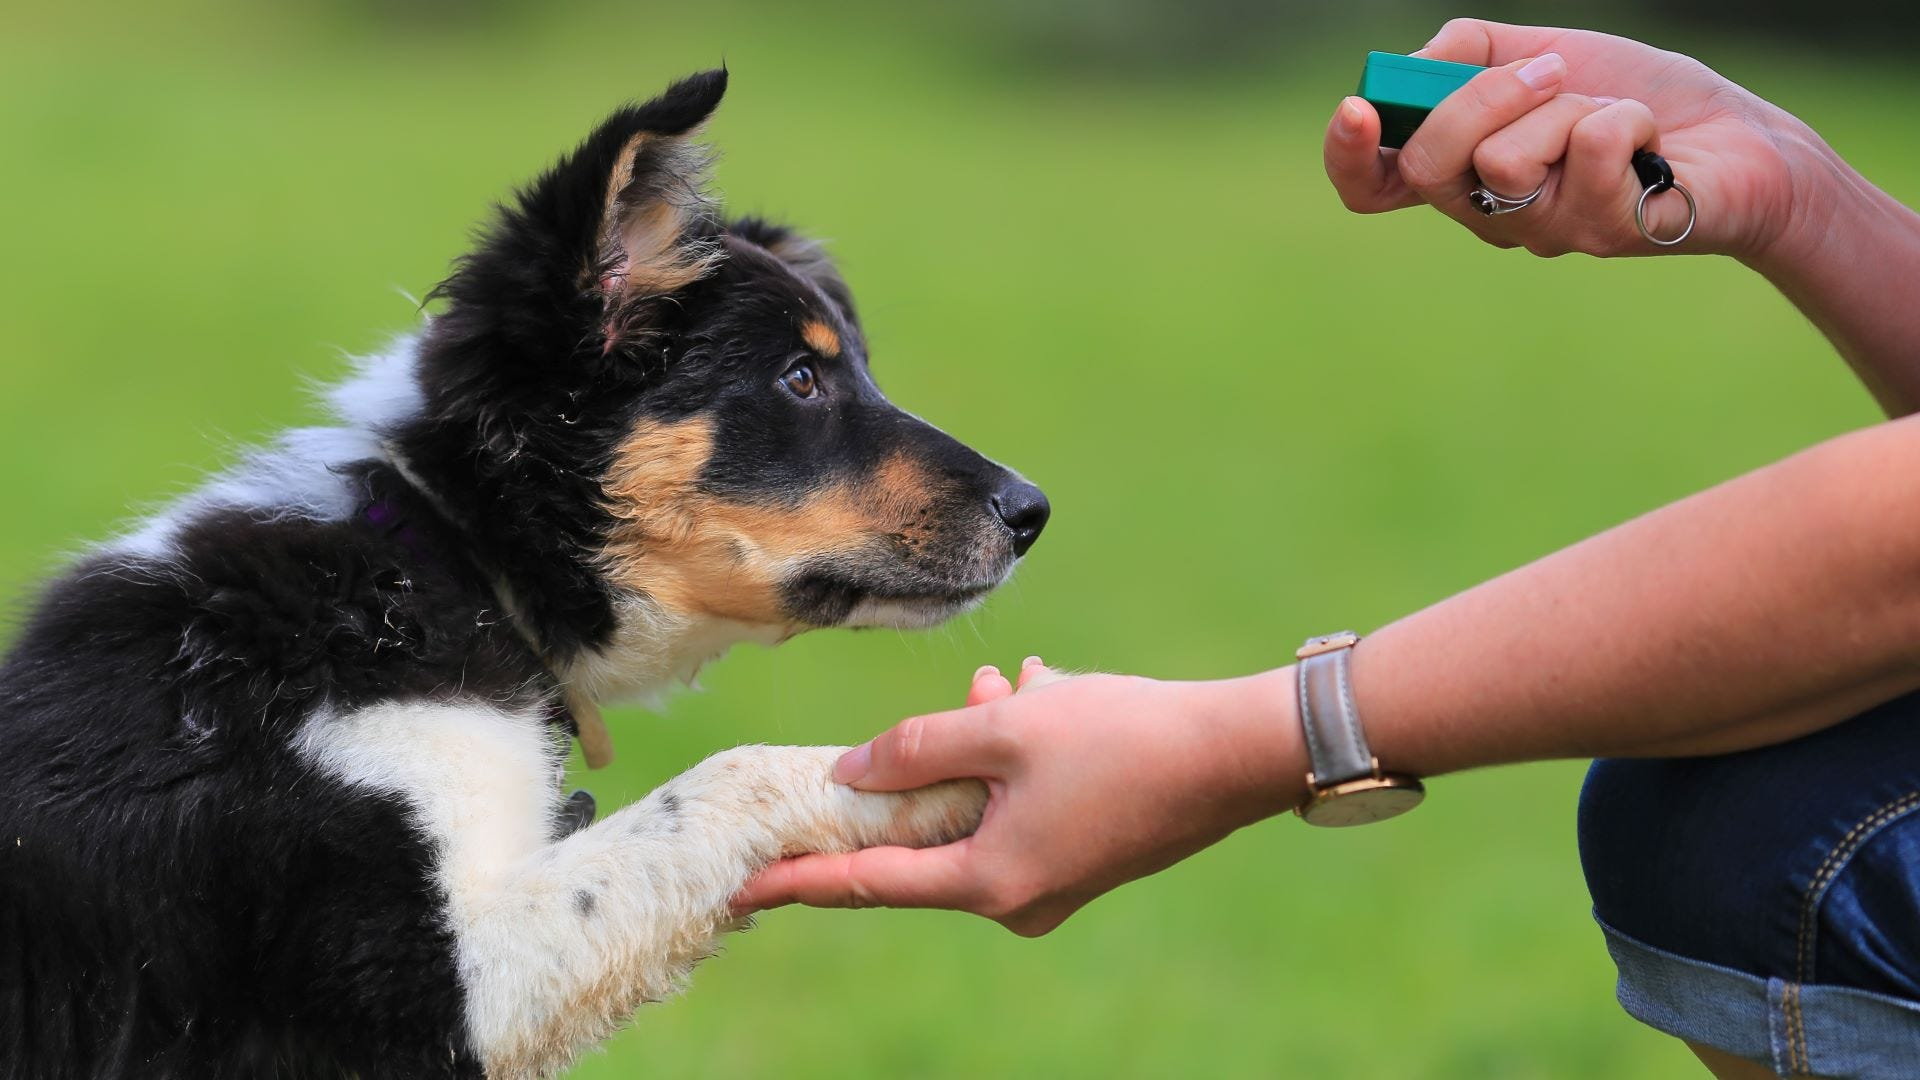 Someone shaking hands with a Border Collie pup and using a dog training clicker.